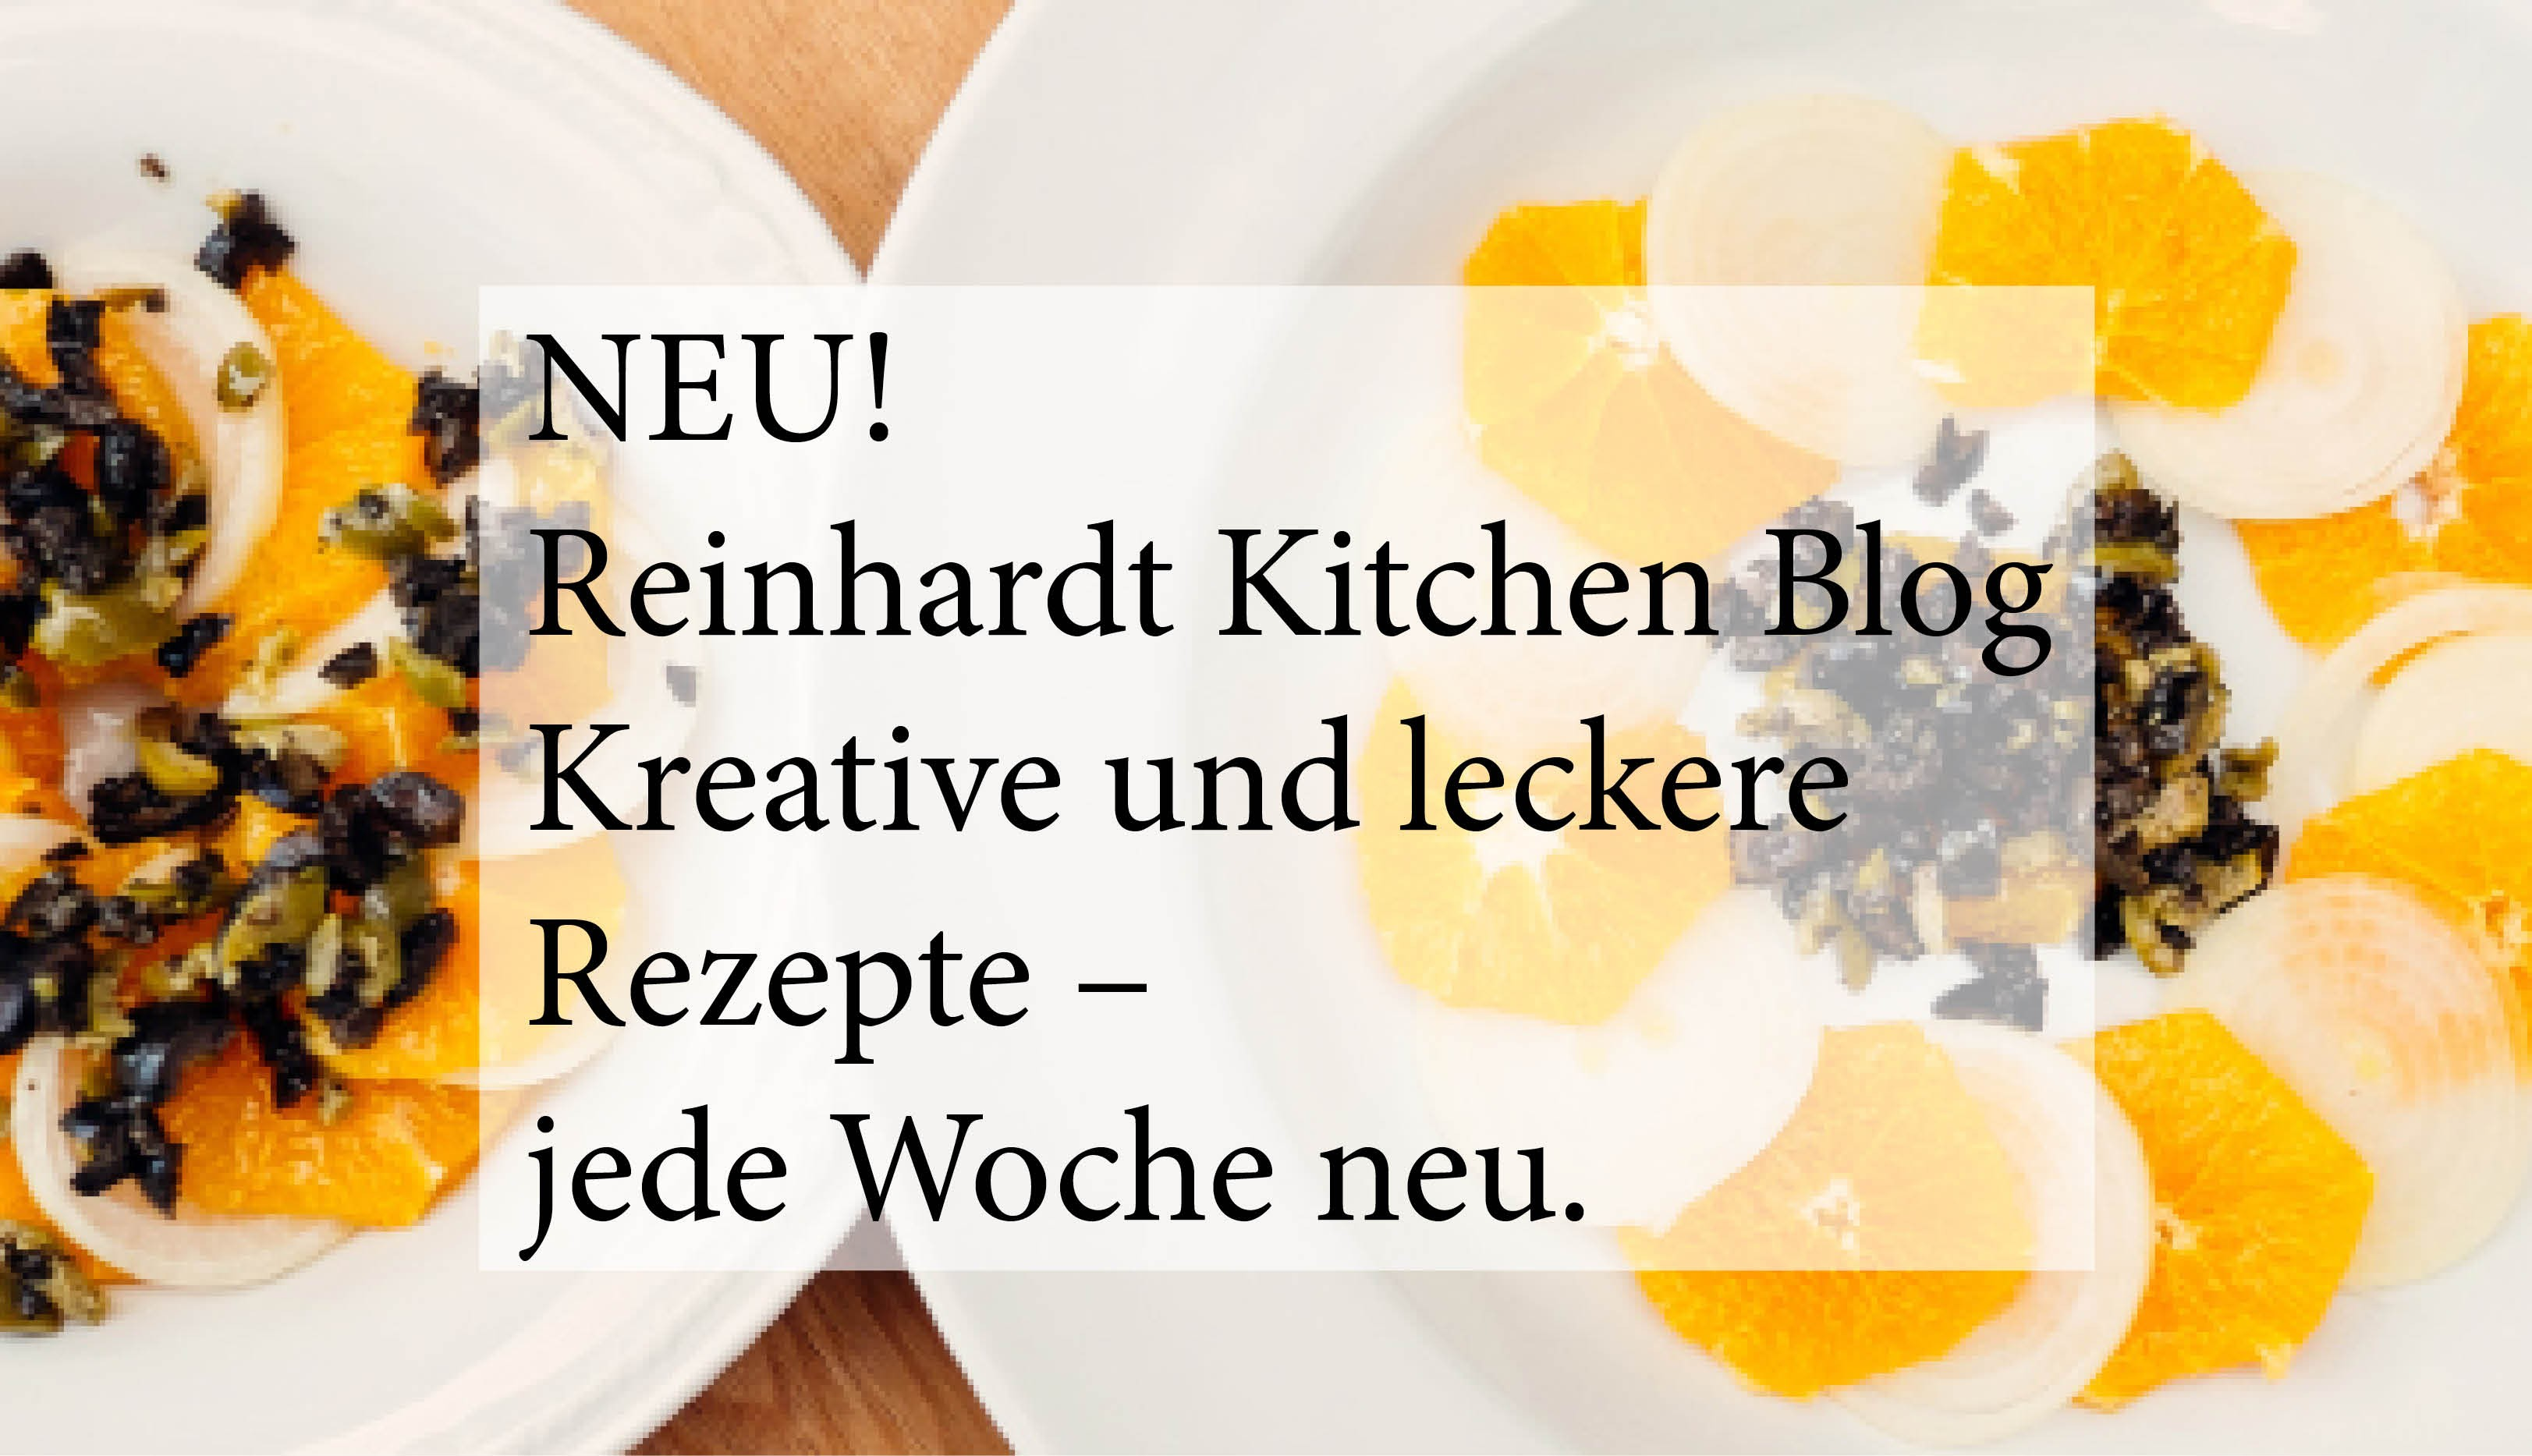 Reinhardt Kitchen Blog